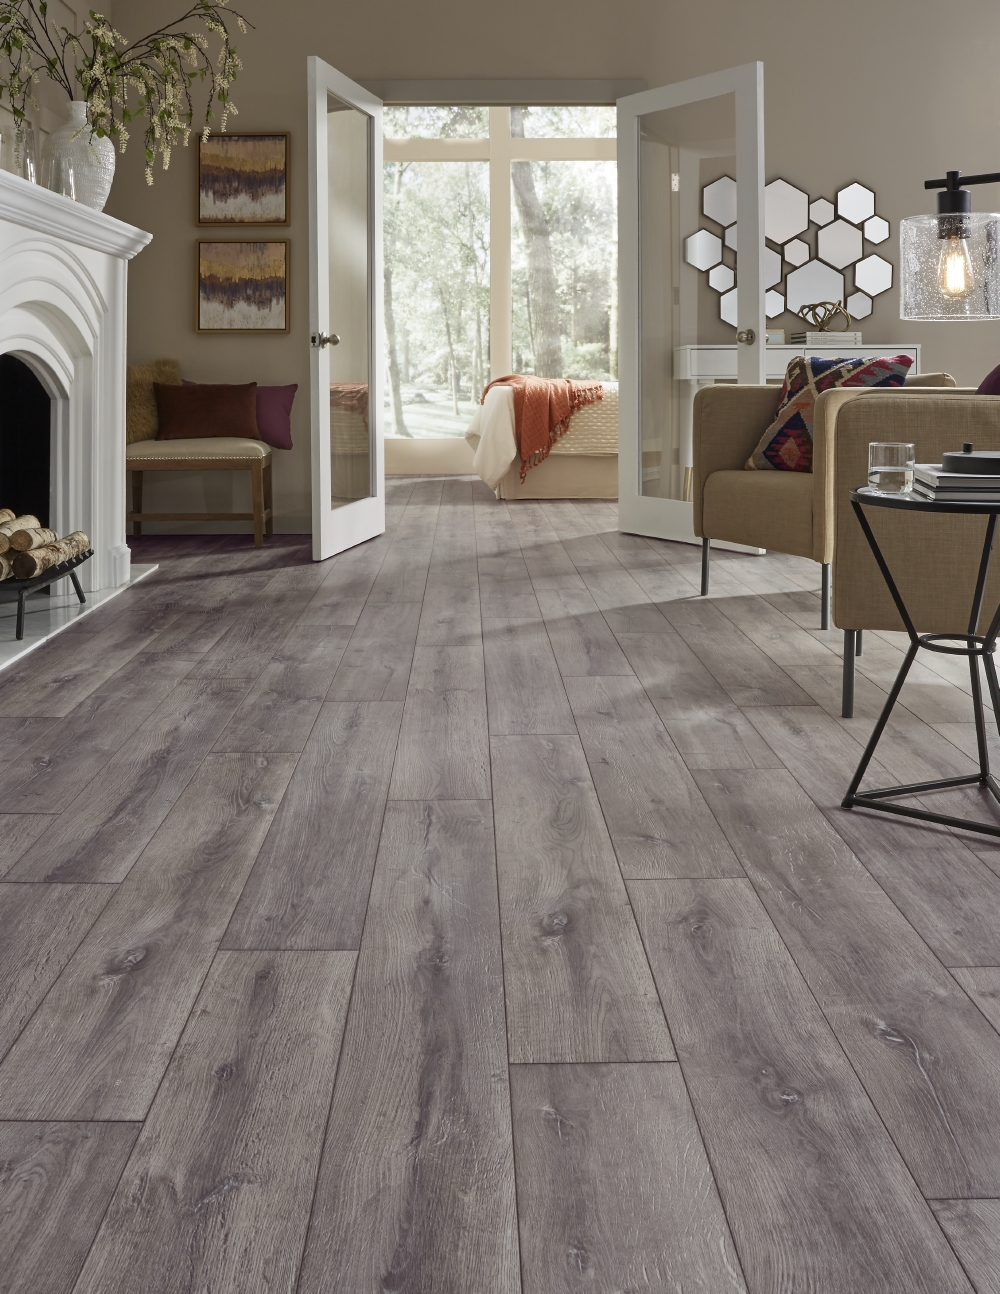 laminate floor blacksmith oak home flooring laminate options mannington flooring. Black Bedroom Furniture Sets. Home Design Ideas